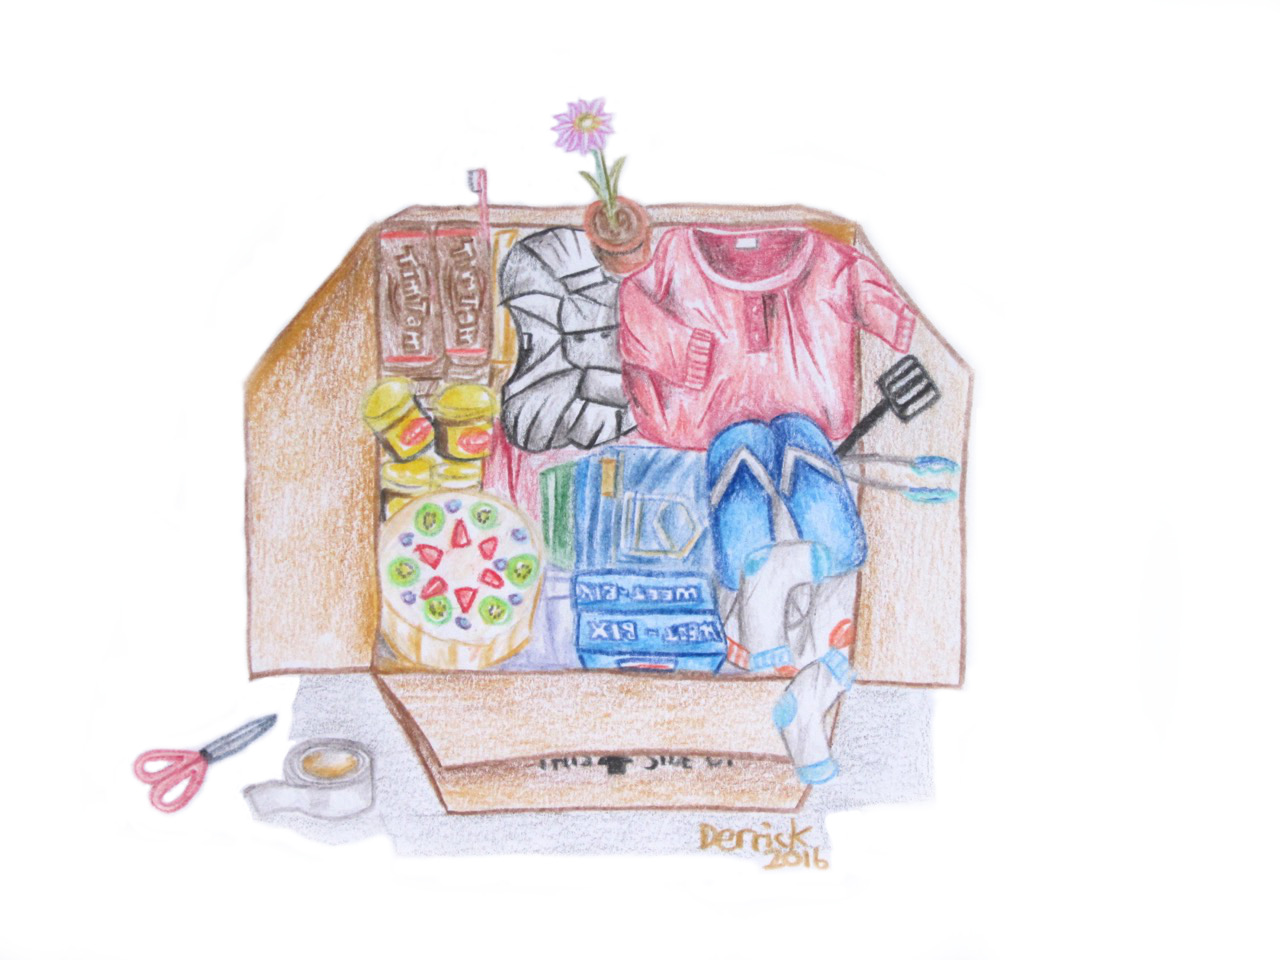 Sketch of a moving box filled with personal possessions